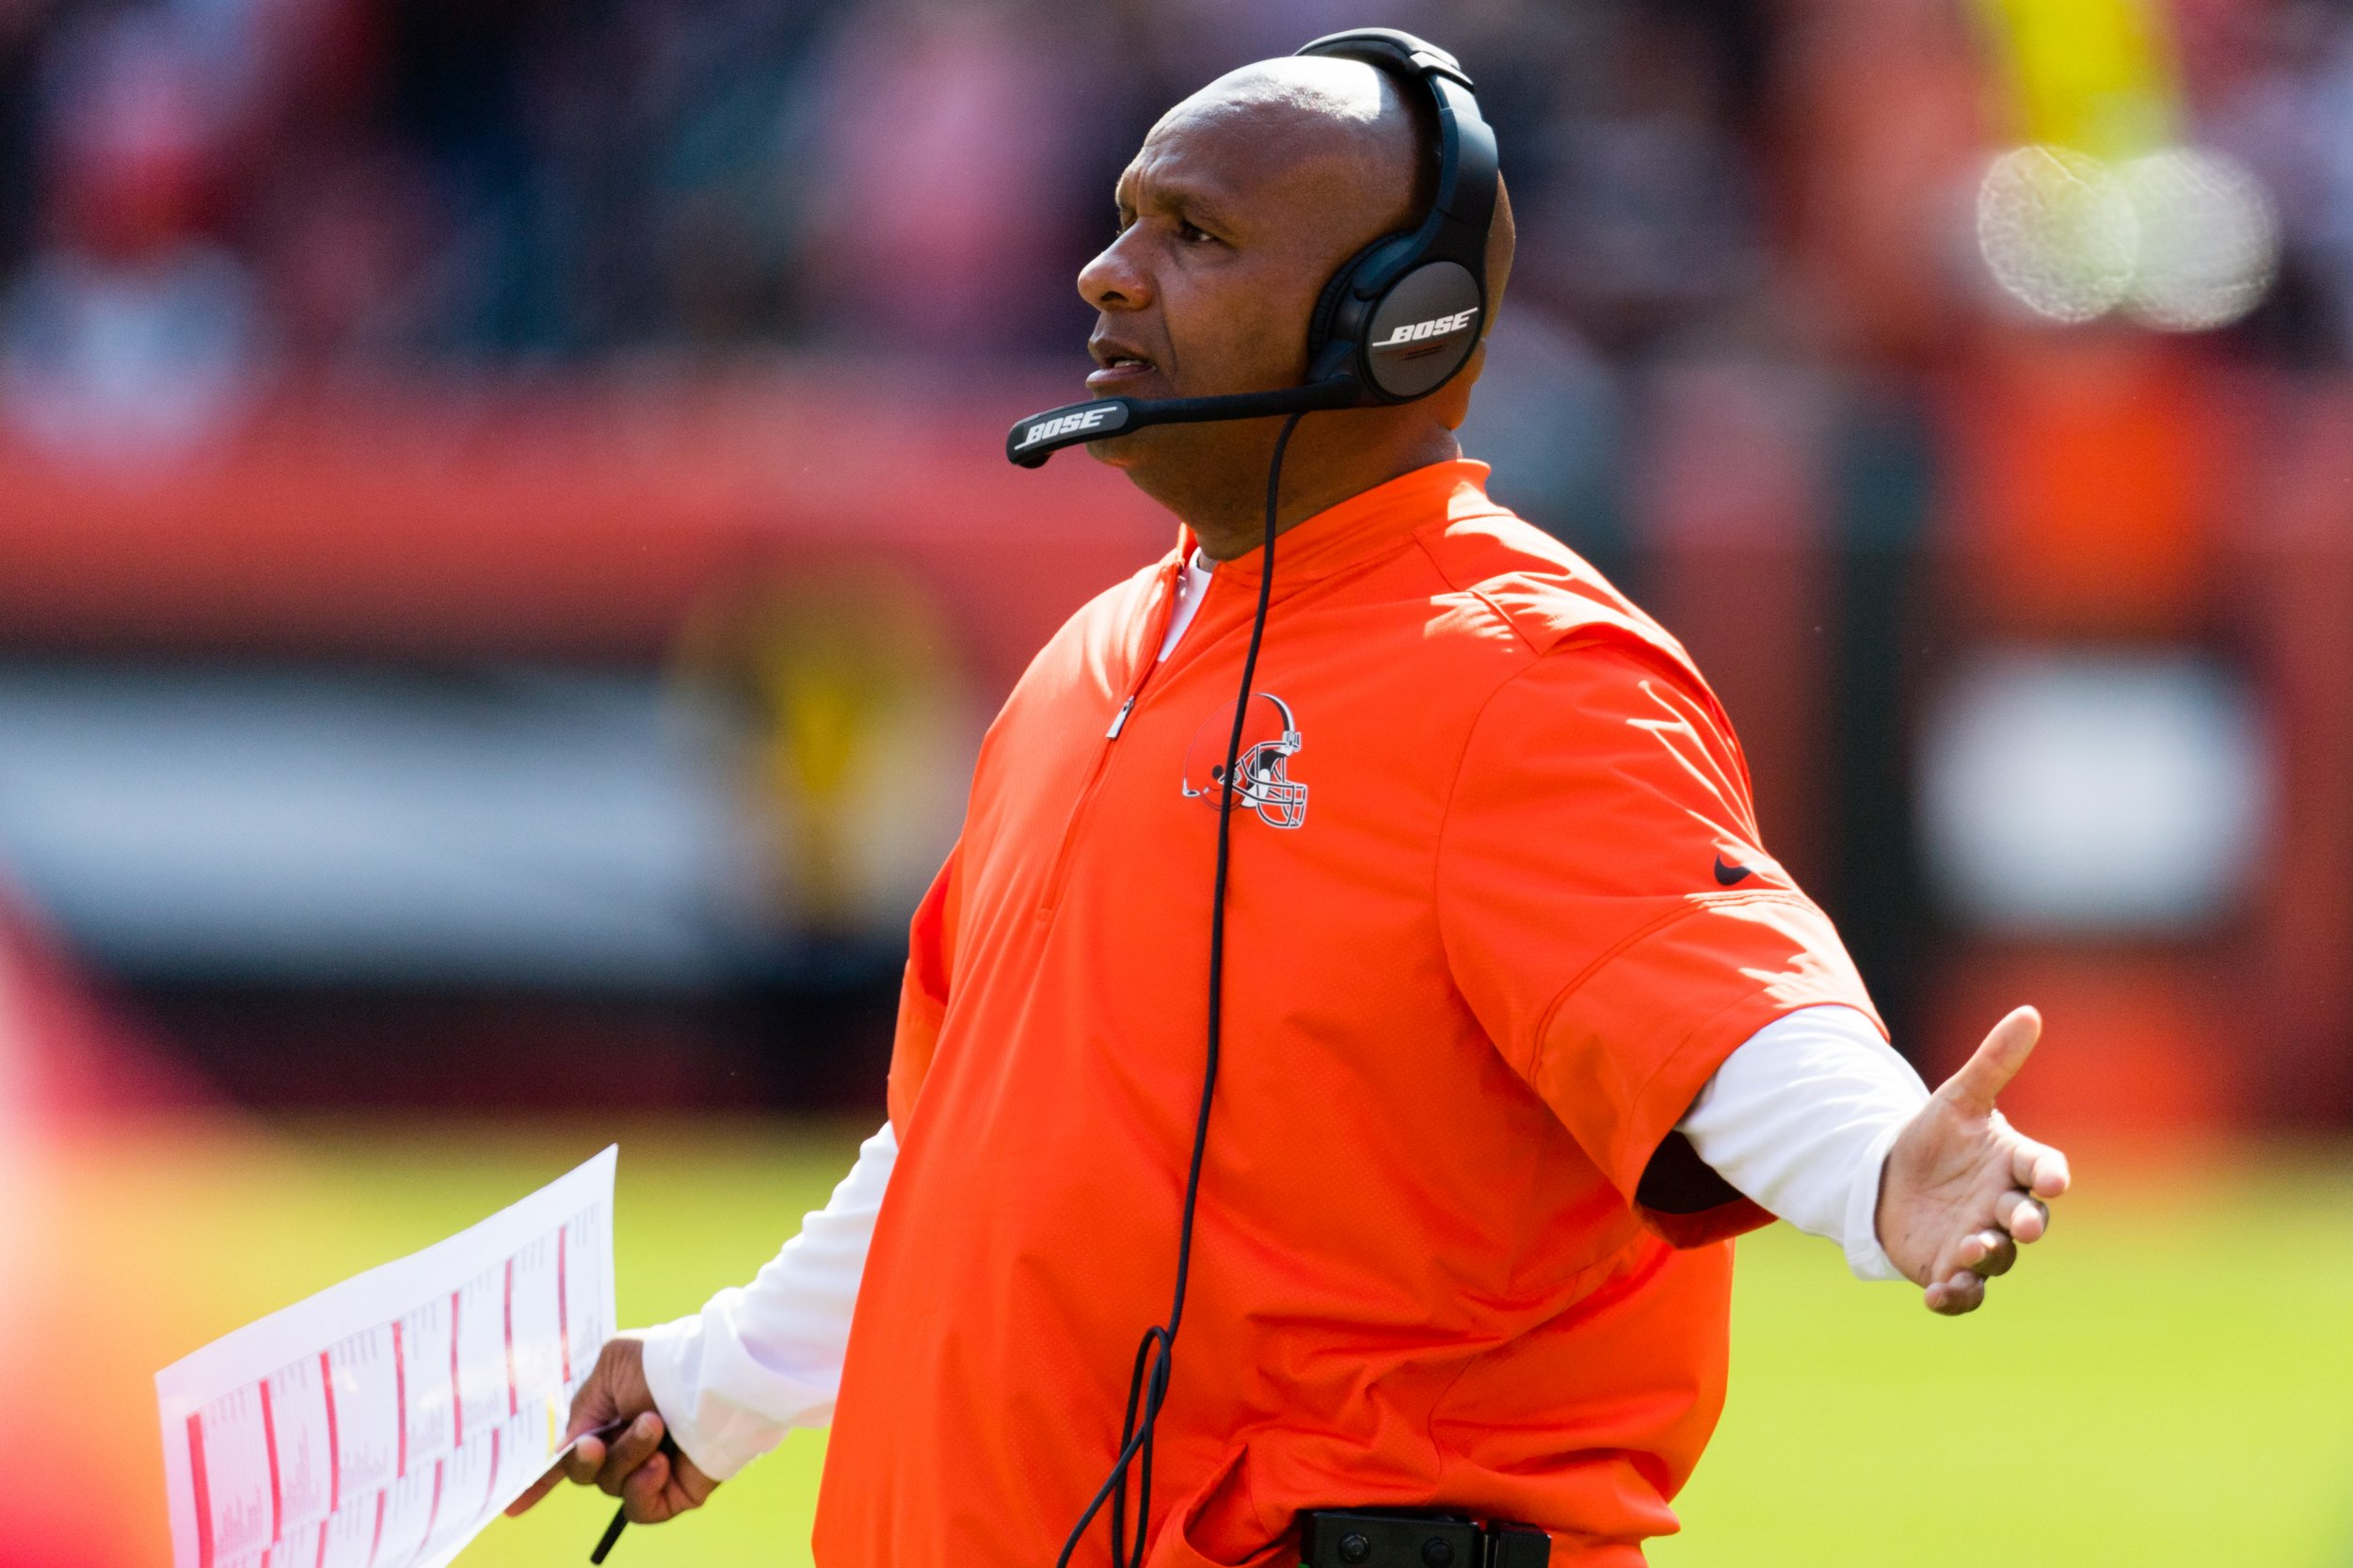 Cleveland Browns head coach Hue Jackson.